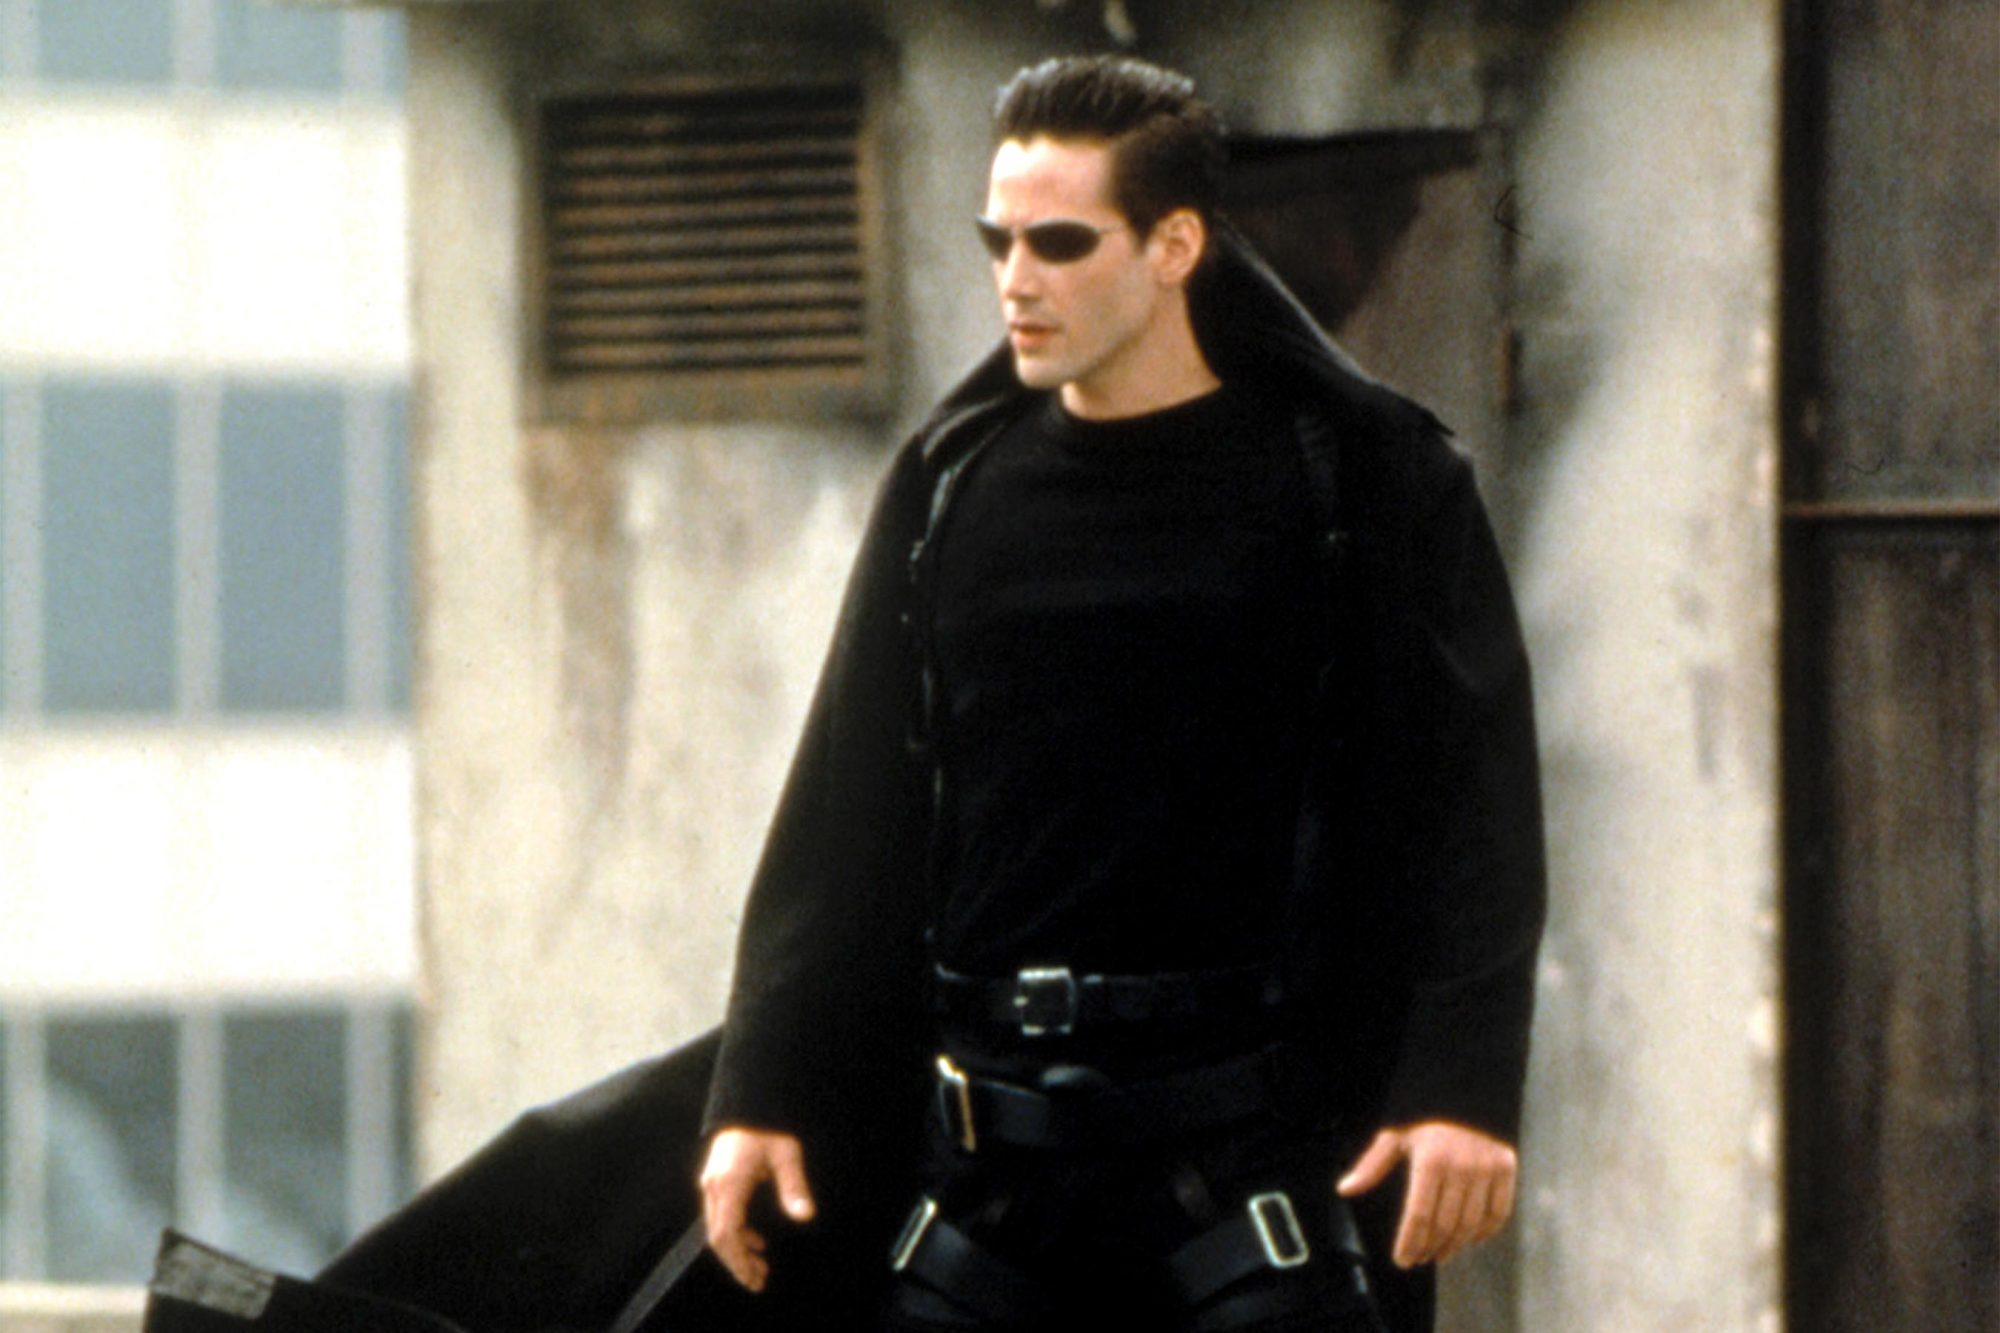 THE MATRIX, Keanu Reeves, 1999. ©Warner Bros./Courtesy Everett Collection